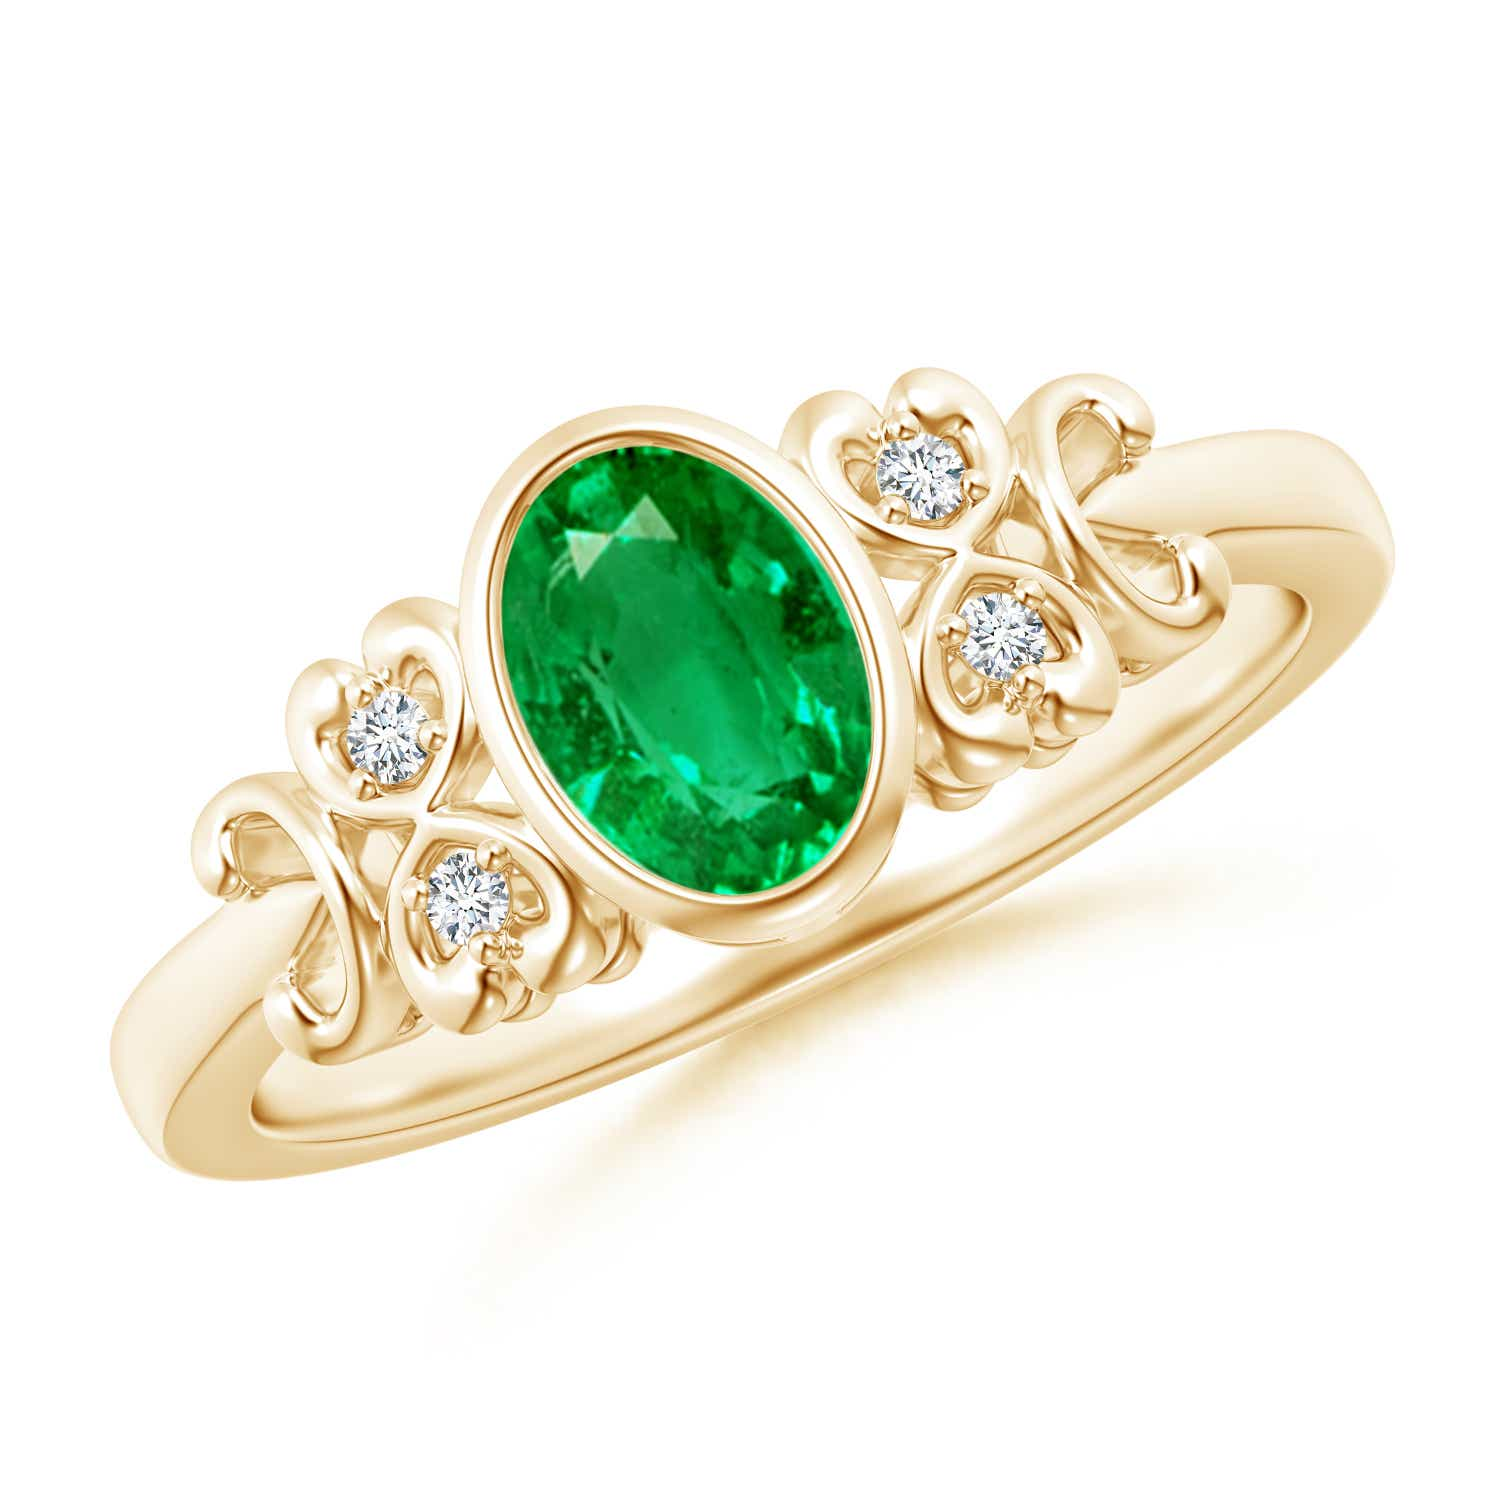 Vintage Oval Emerald Bezel Ring with Diamond Accents - Angara.com